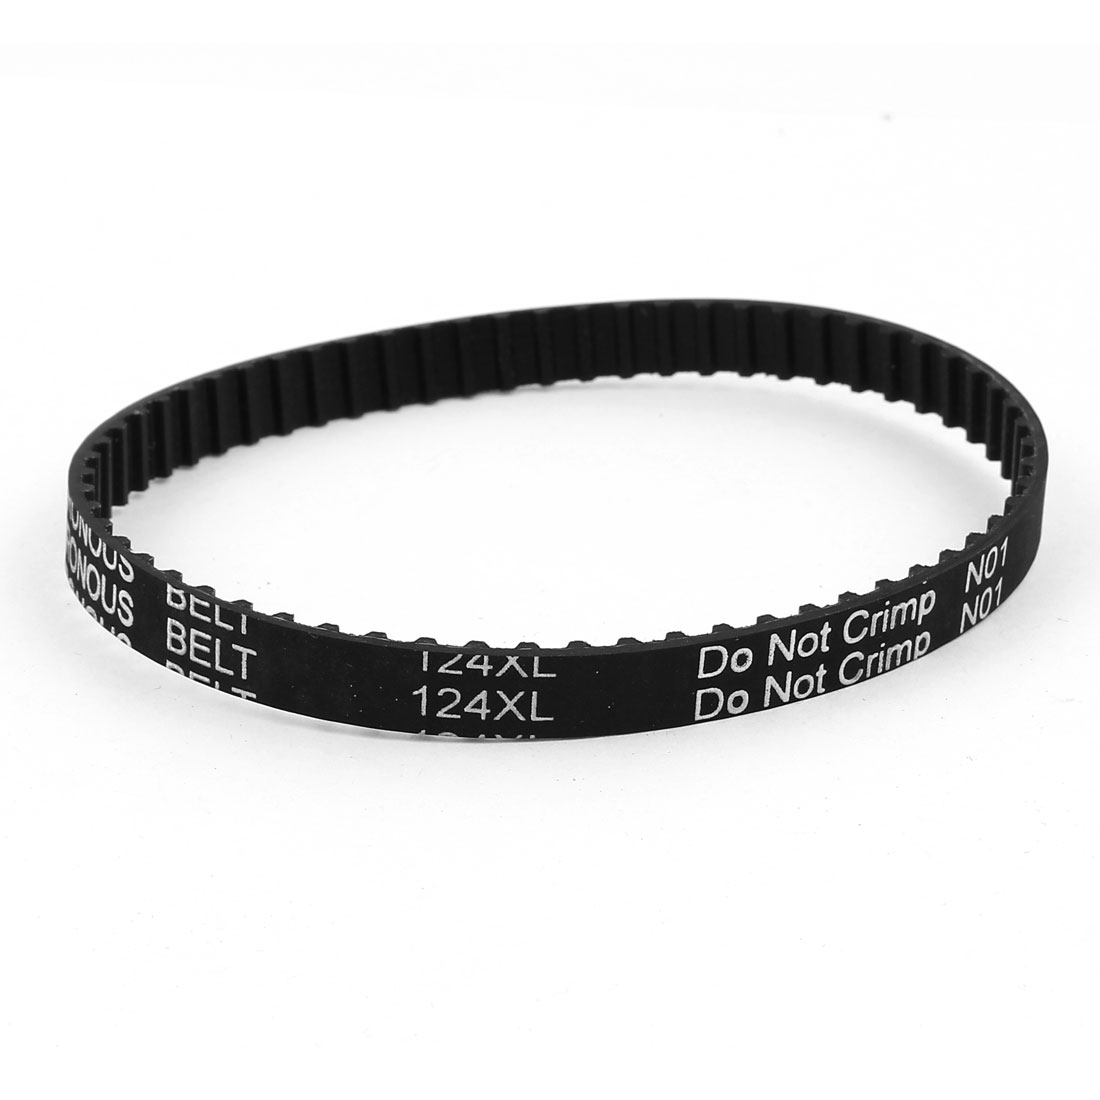 Table Saw Timing Belt 62 Teeth 9.5mm Width 5.08mm Pitch 124XL 037